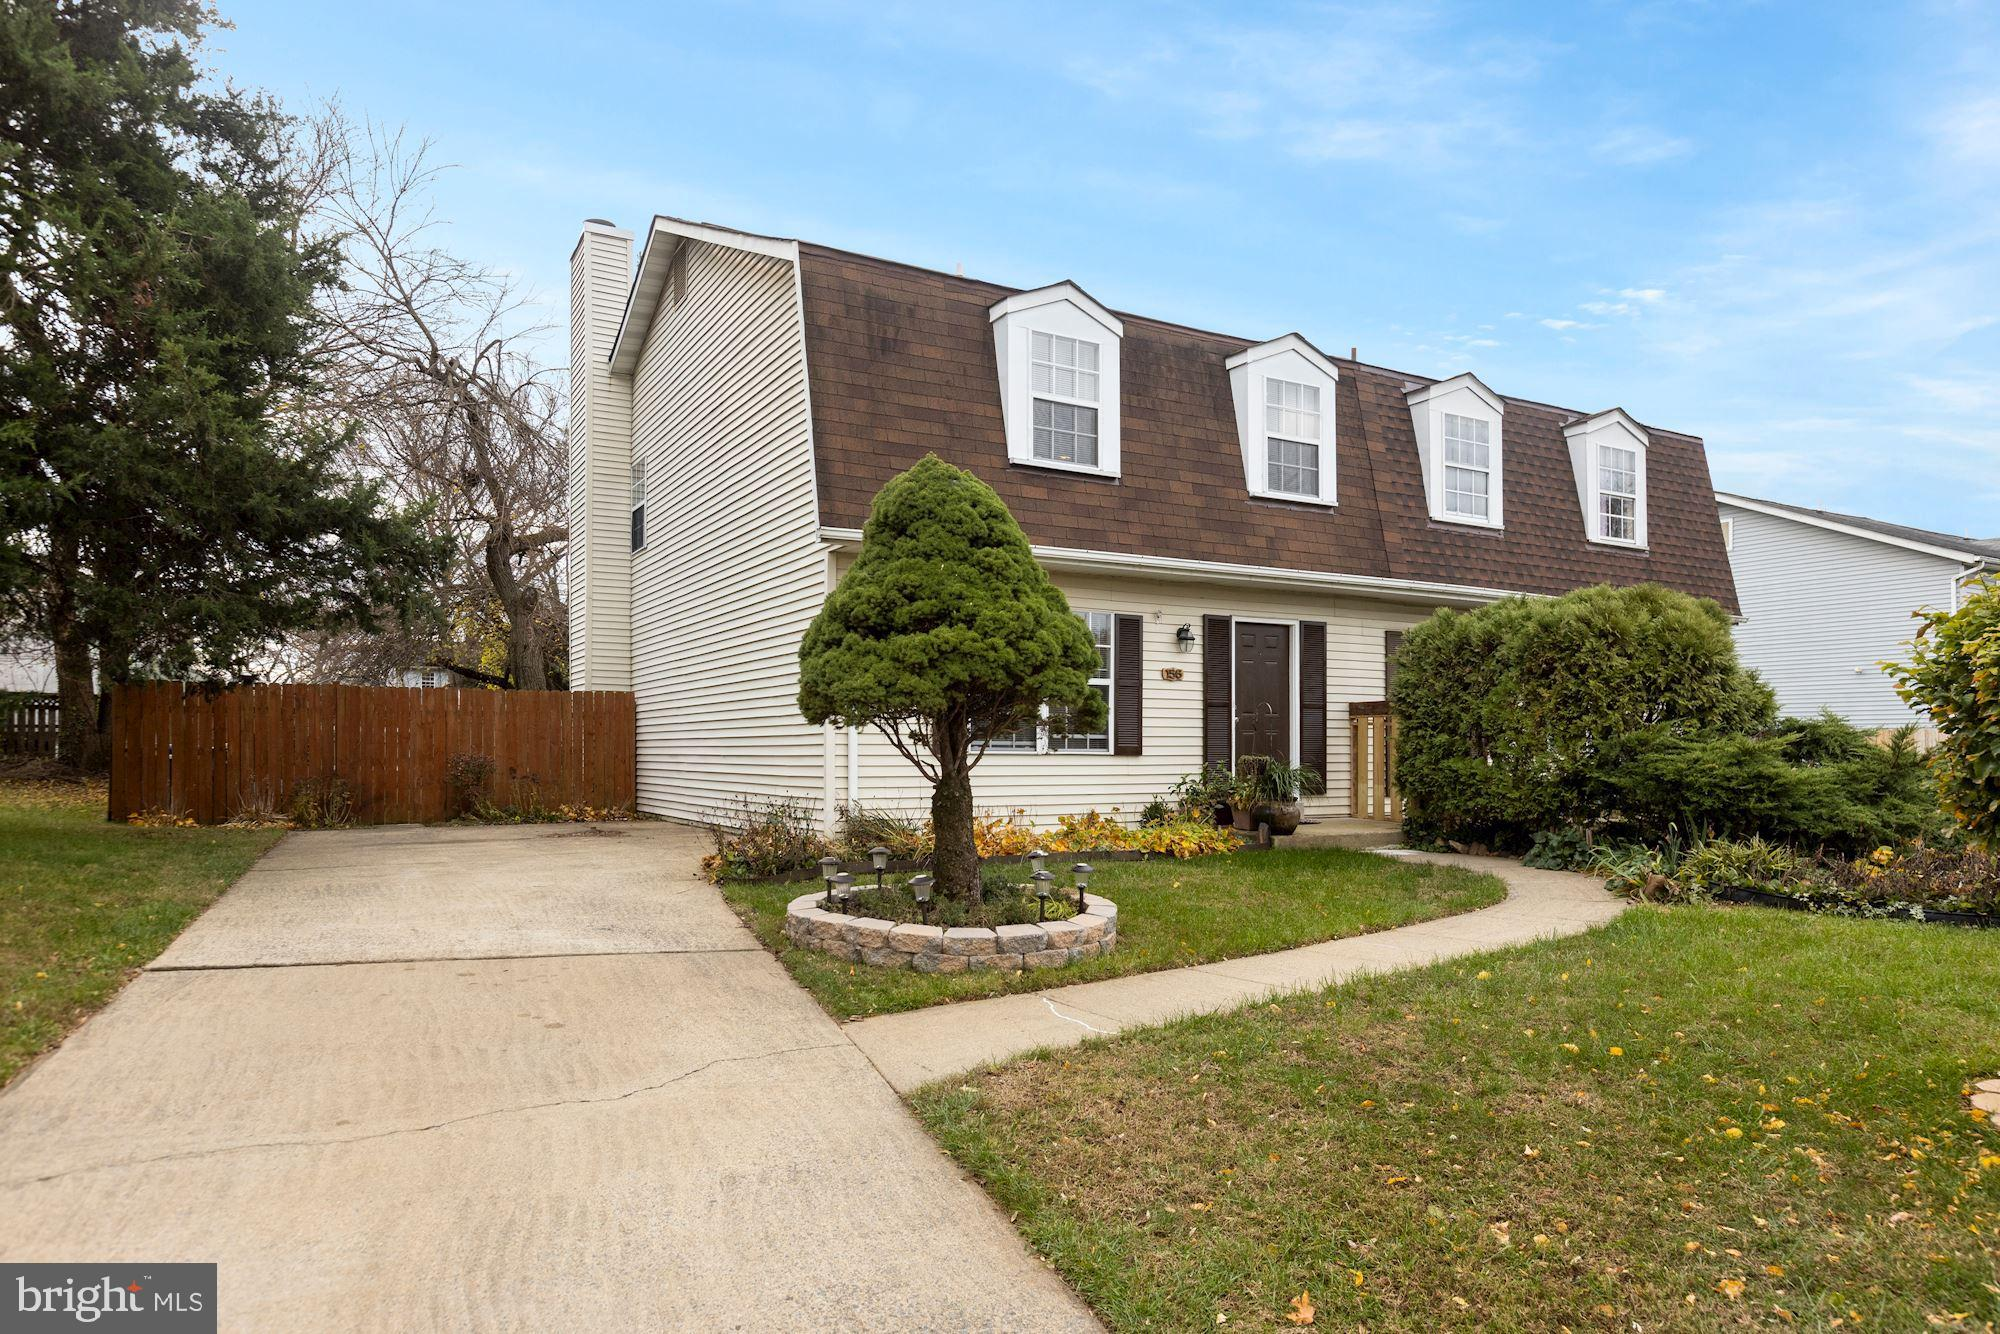 Two story duplex  well cared for by owners in quiet neighborhood so close to shopping, the Outlets a